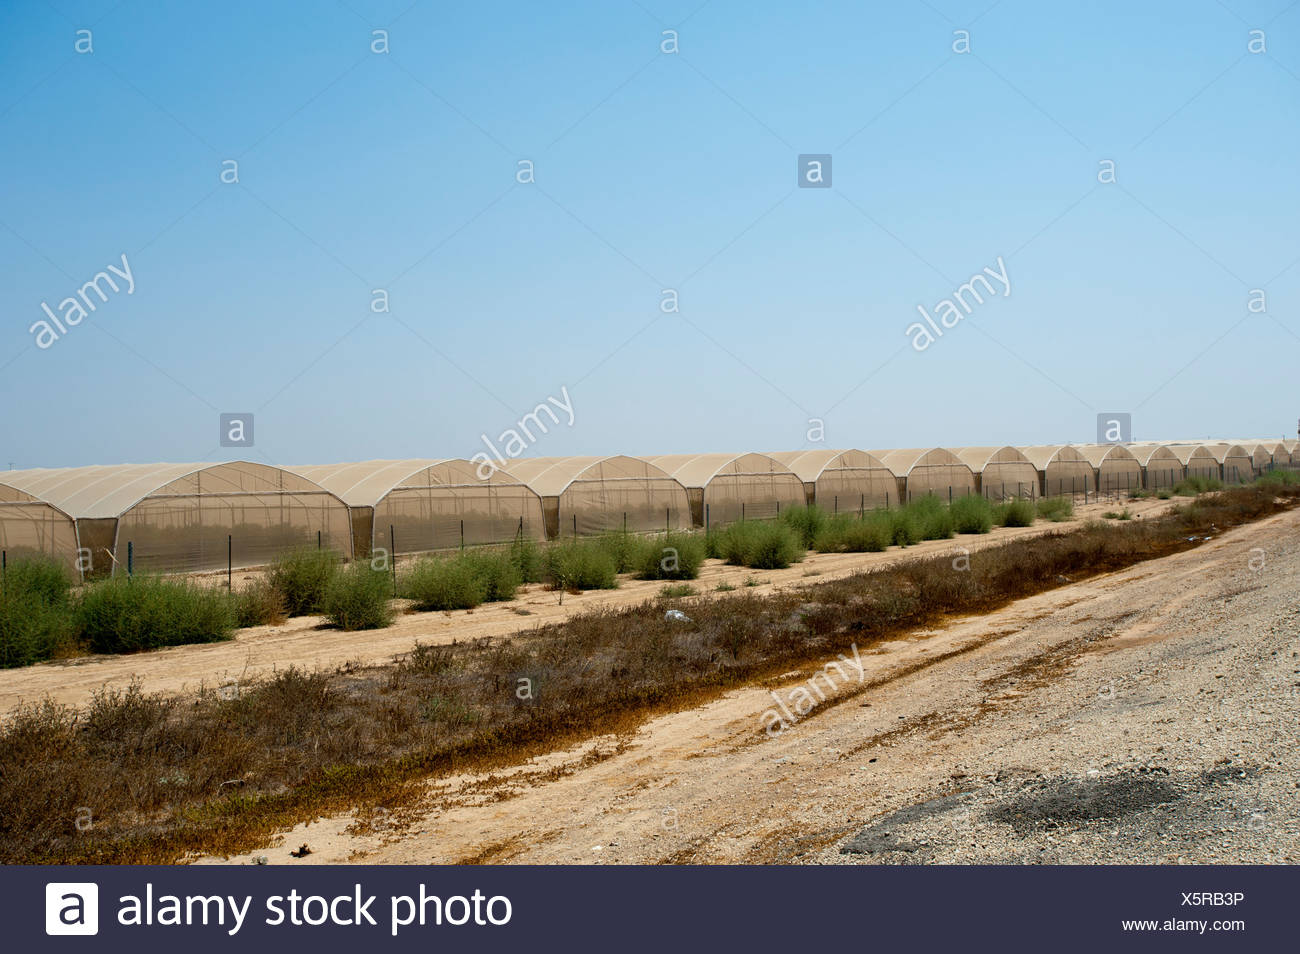 Israel, Aravah Desert Exterior of a tomato greenhouse - Stock Image